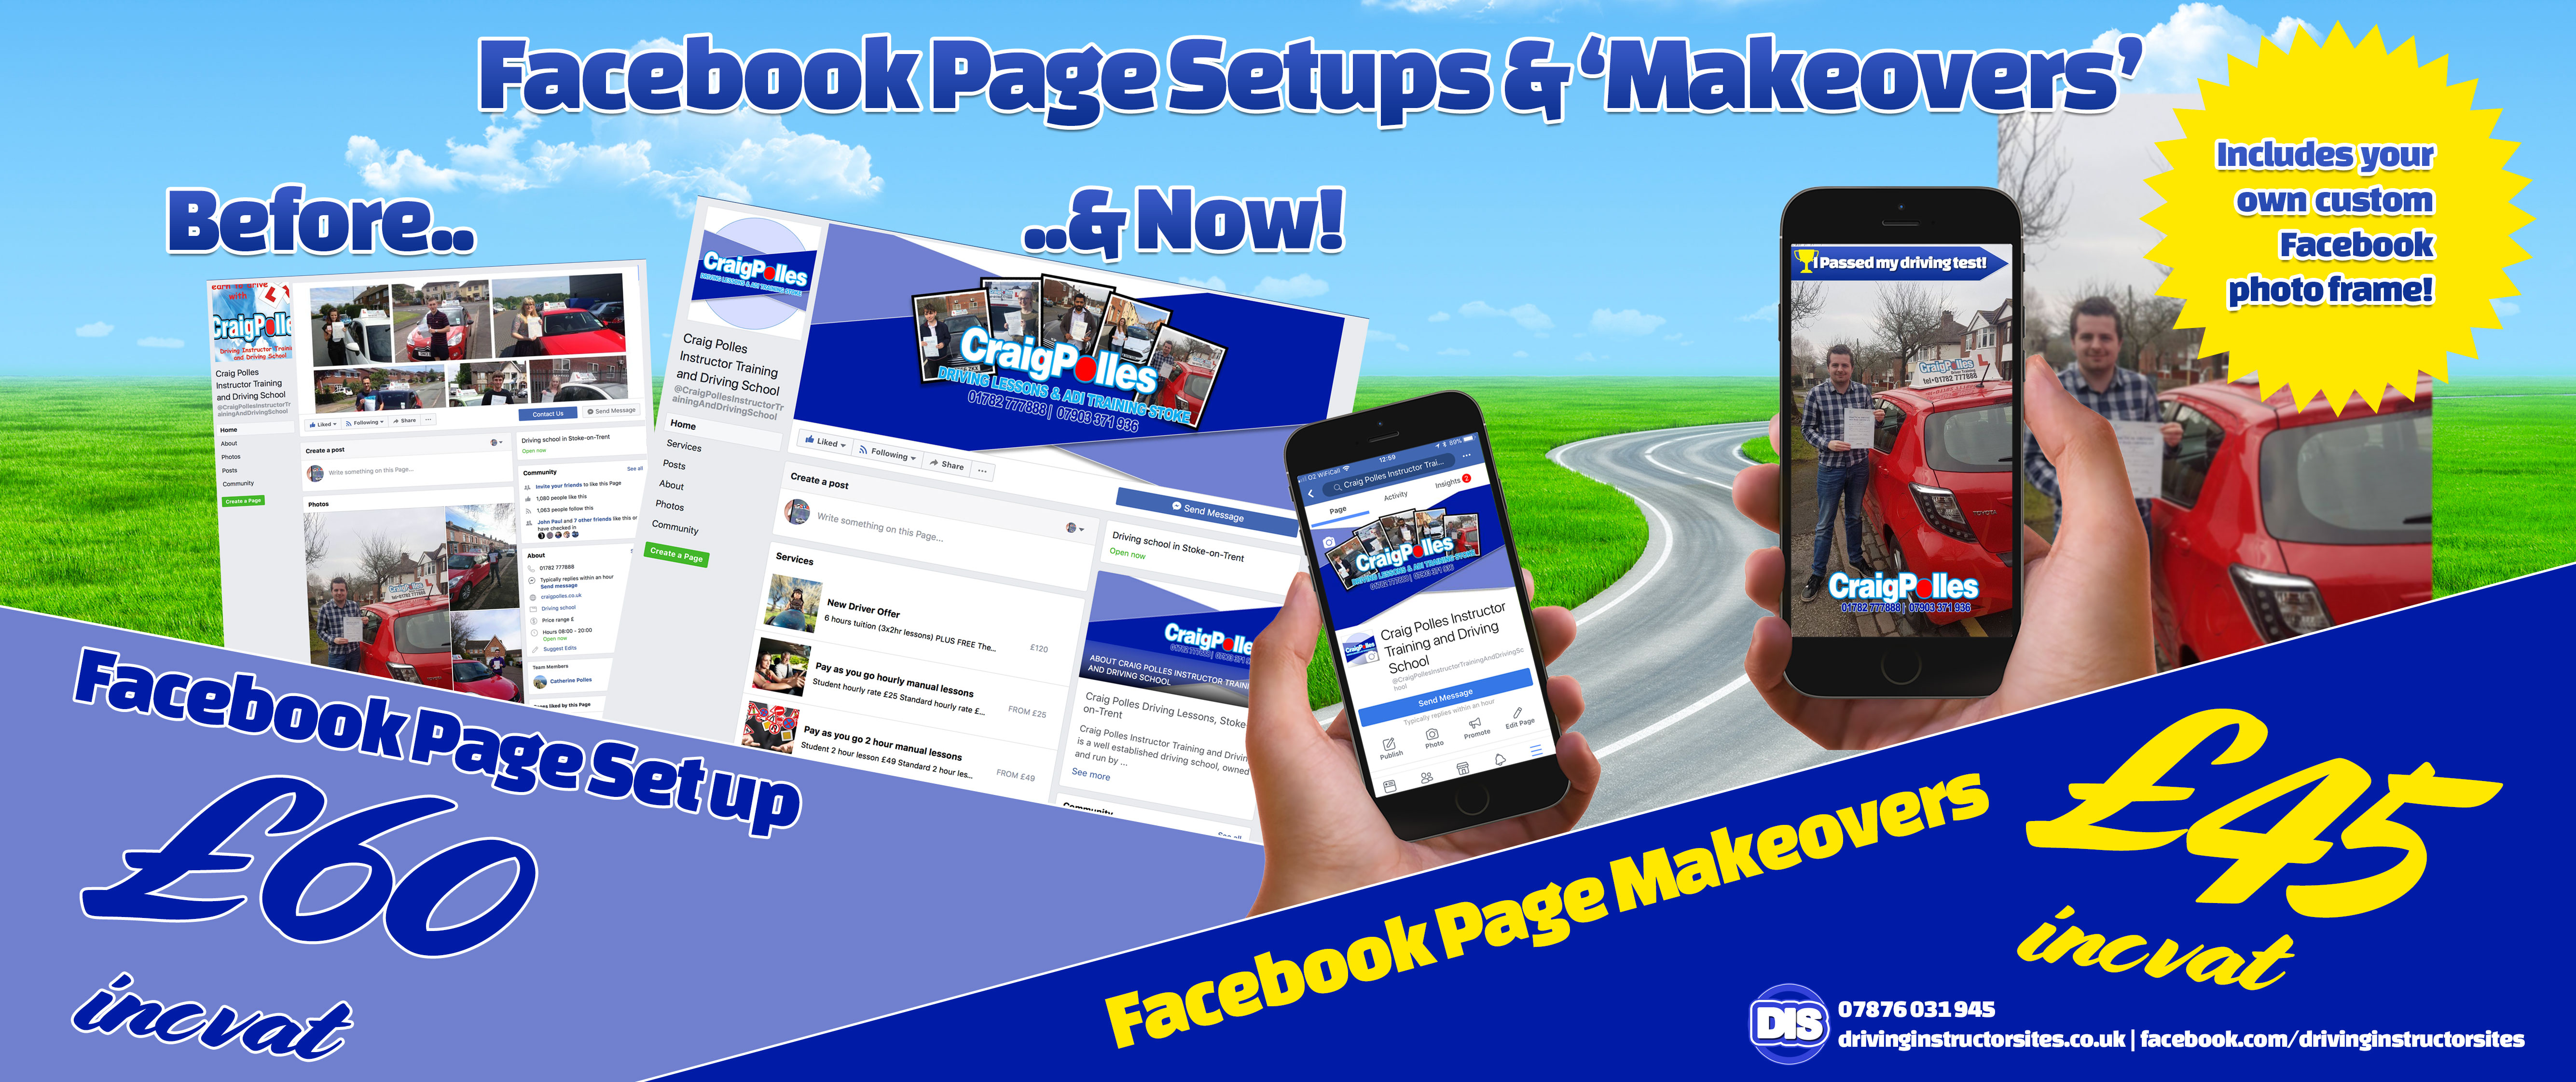 get your facebook page makeover from Driving Instructor Sites